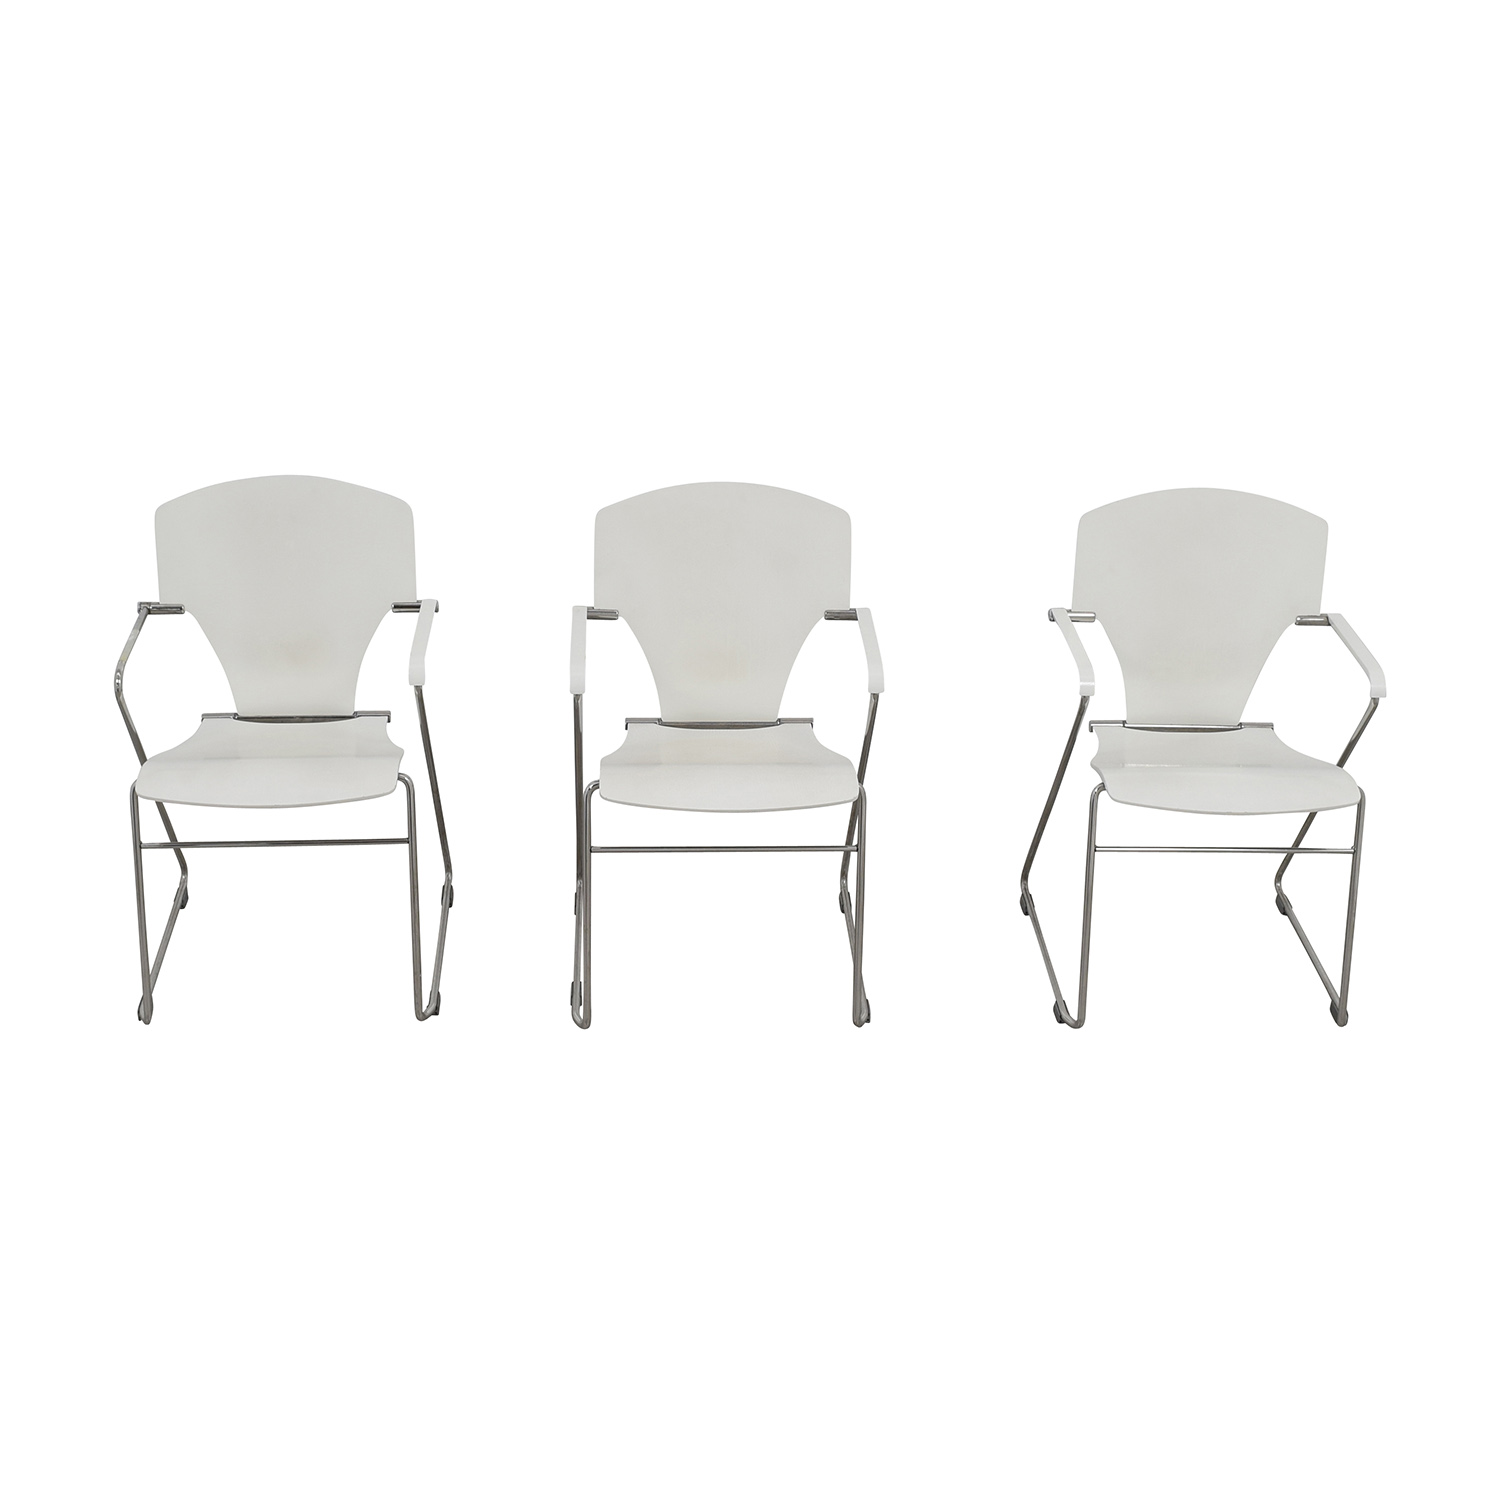 63% OFF Stua Stua Egoa White Dining Chairs Chairs